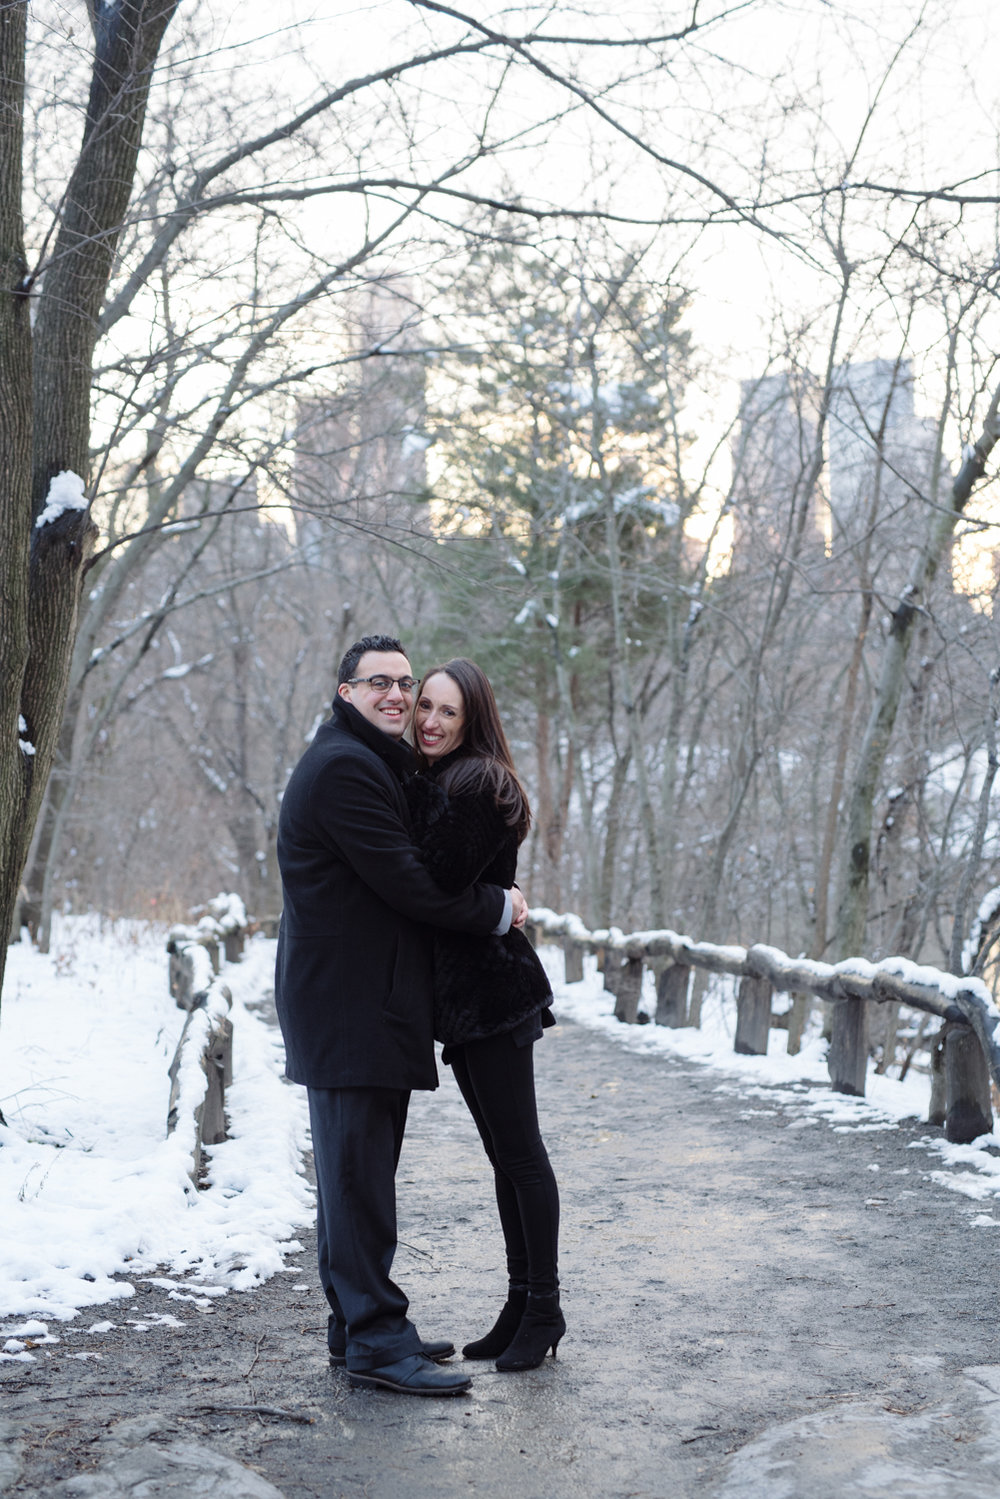 Carmelo+Meg- Central Park Winter Engagement Session- New York City- Olivia Christina Photography-65.JPG